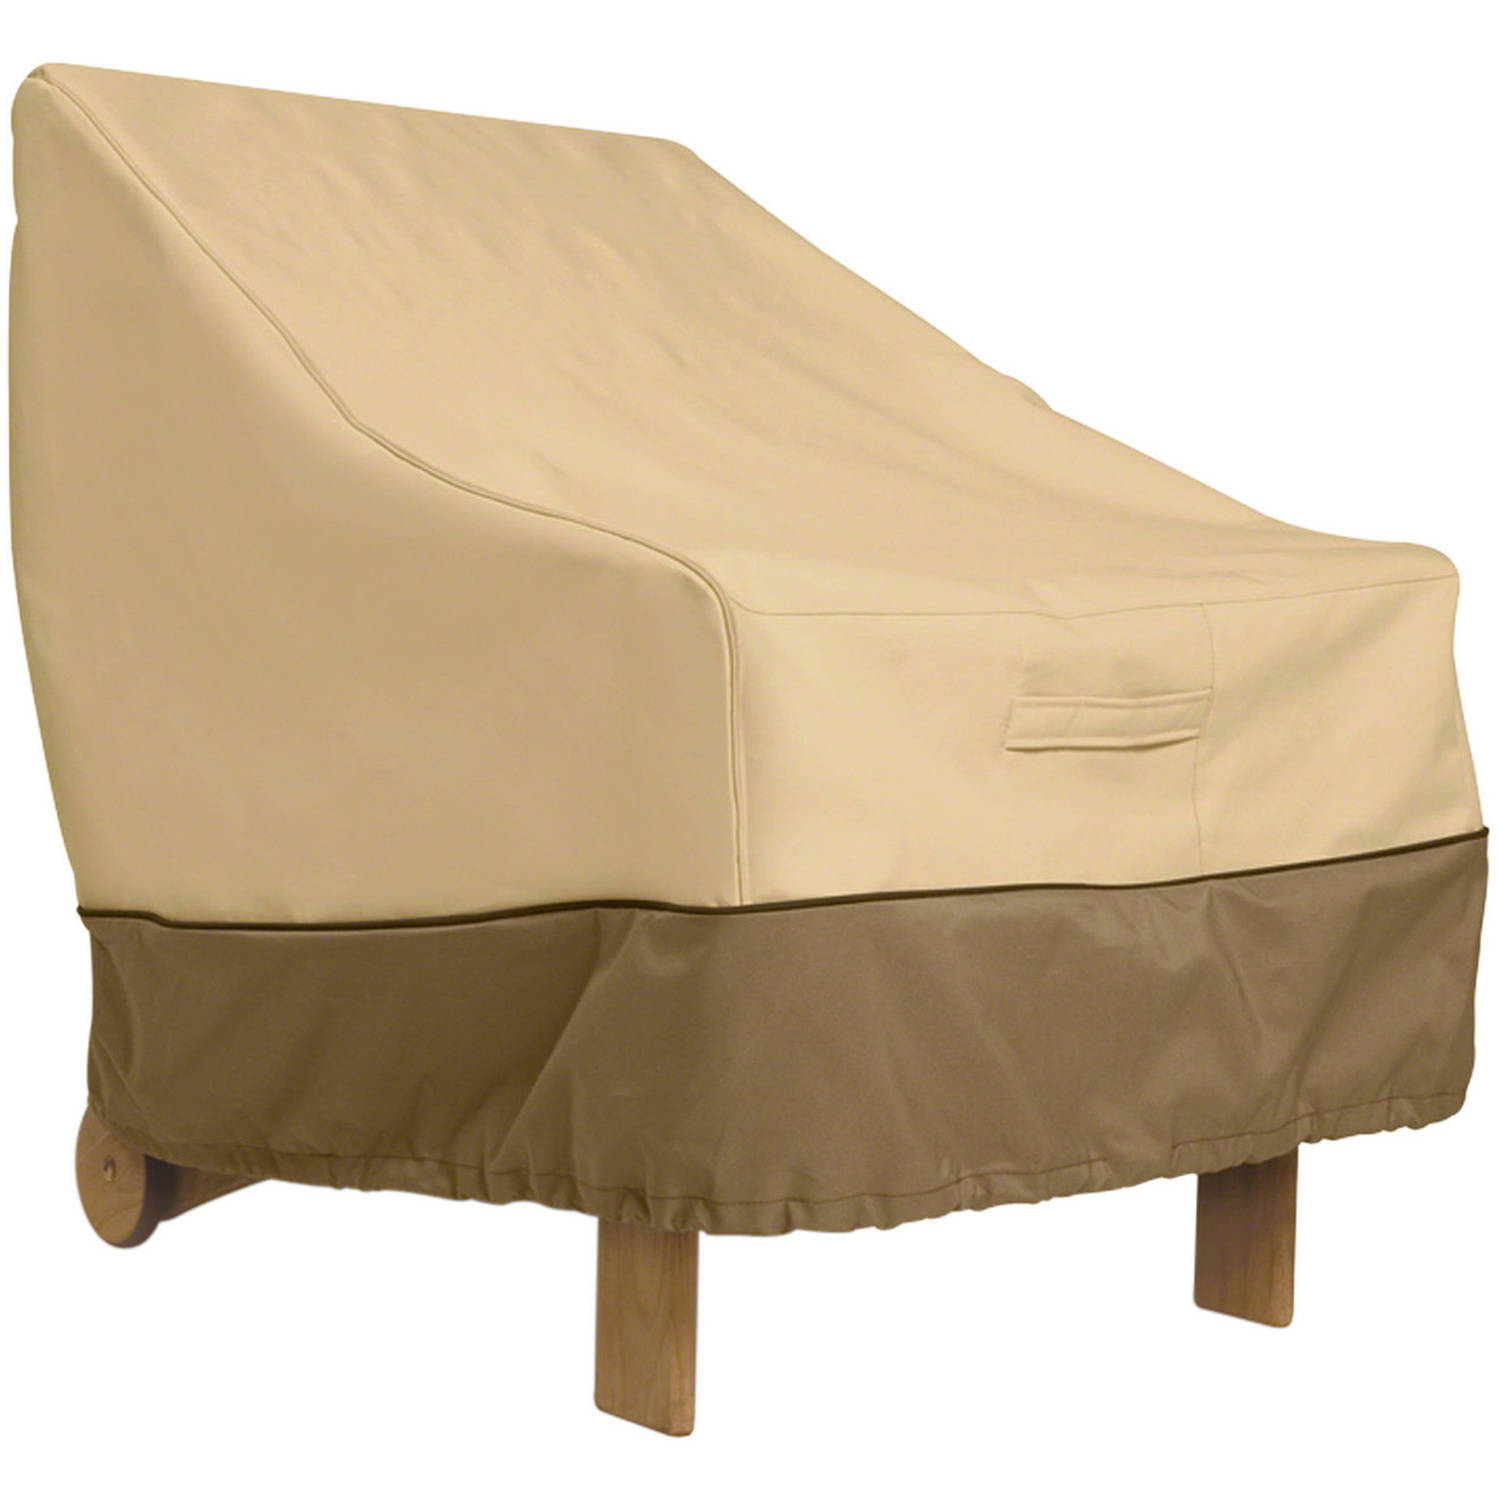 Classic Accessories Patio Furniture Covers. Beautiful Furniture Classic  Accessories Veranda Patio Chair Cover Durable And